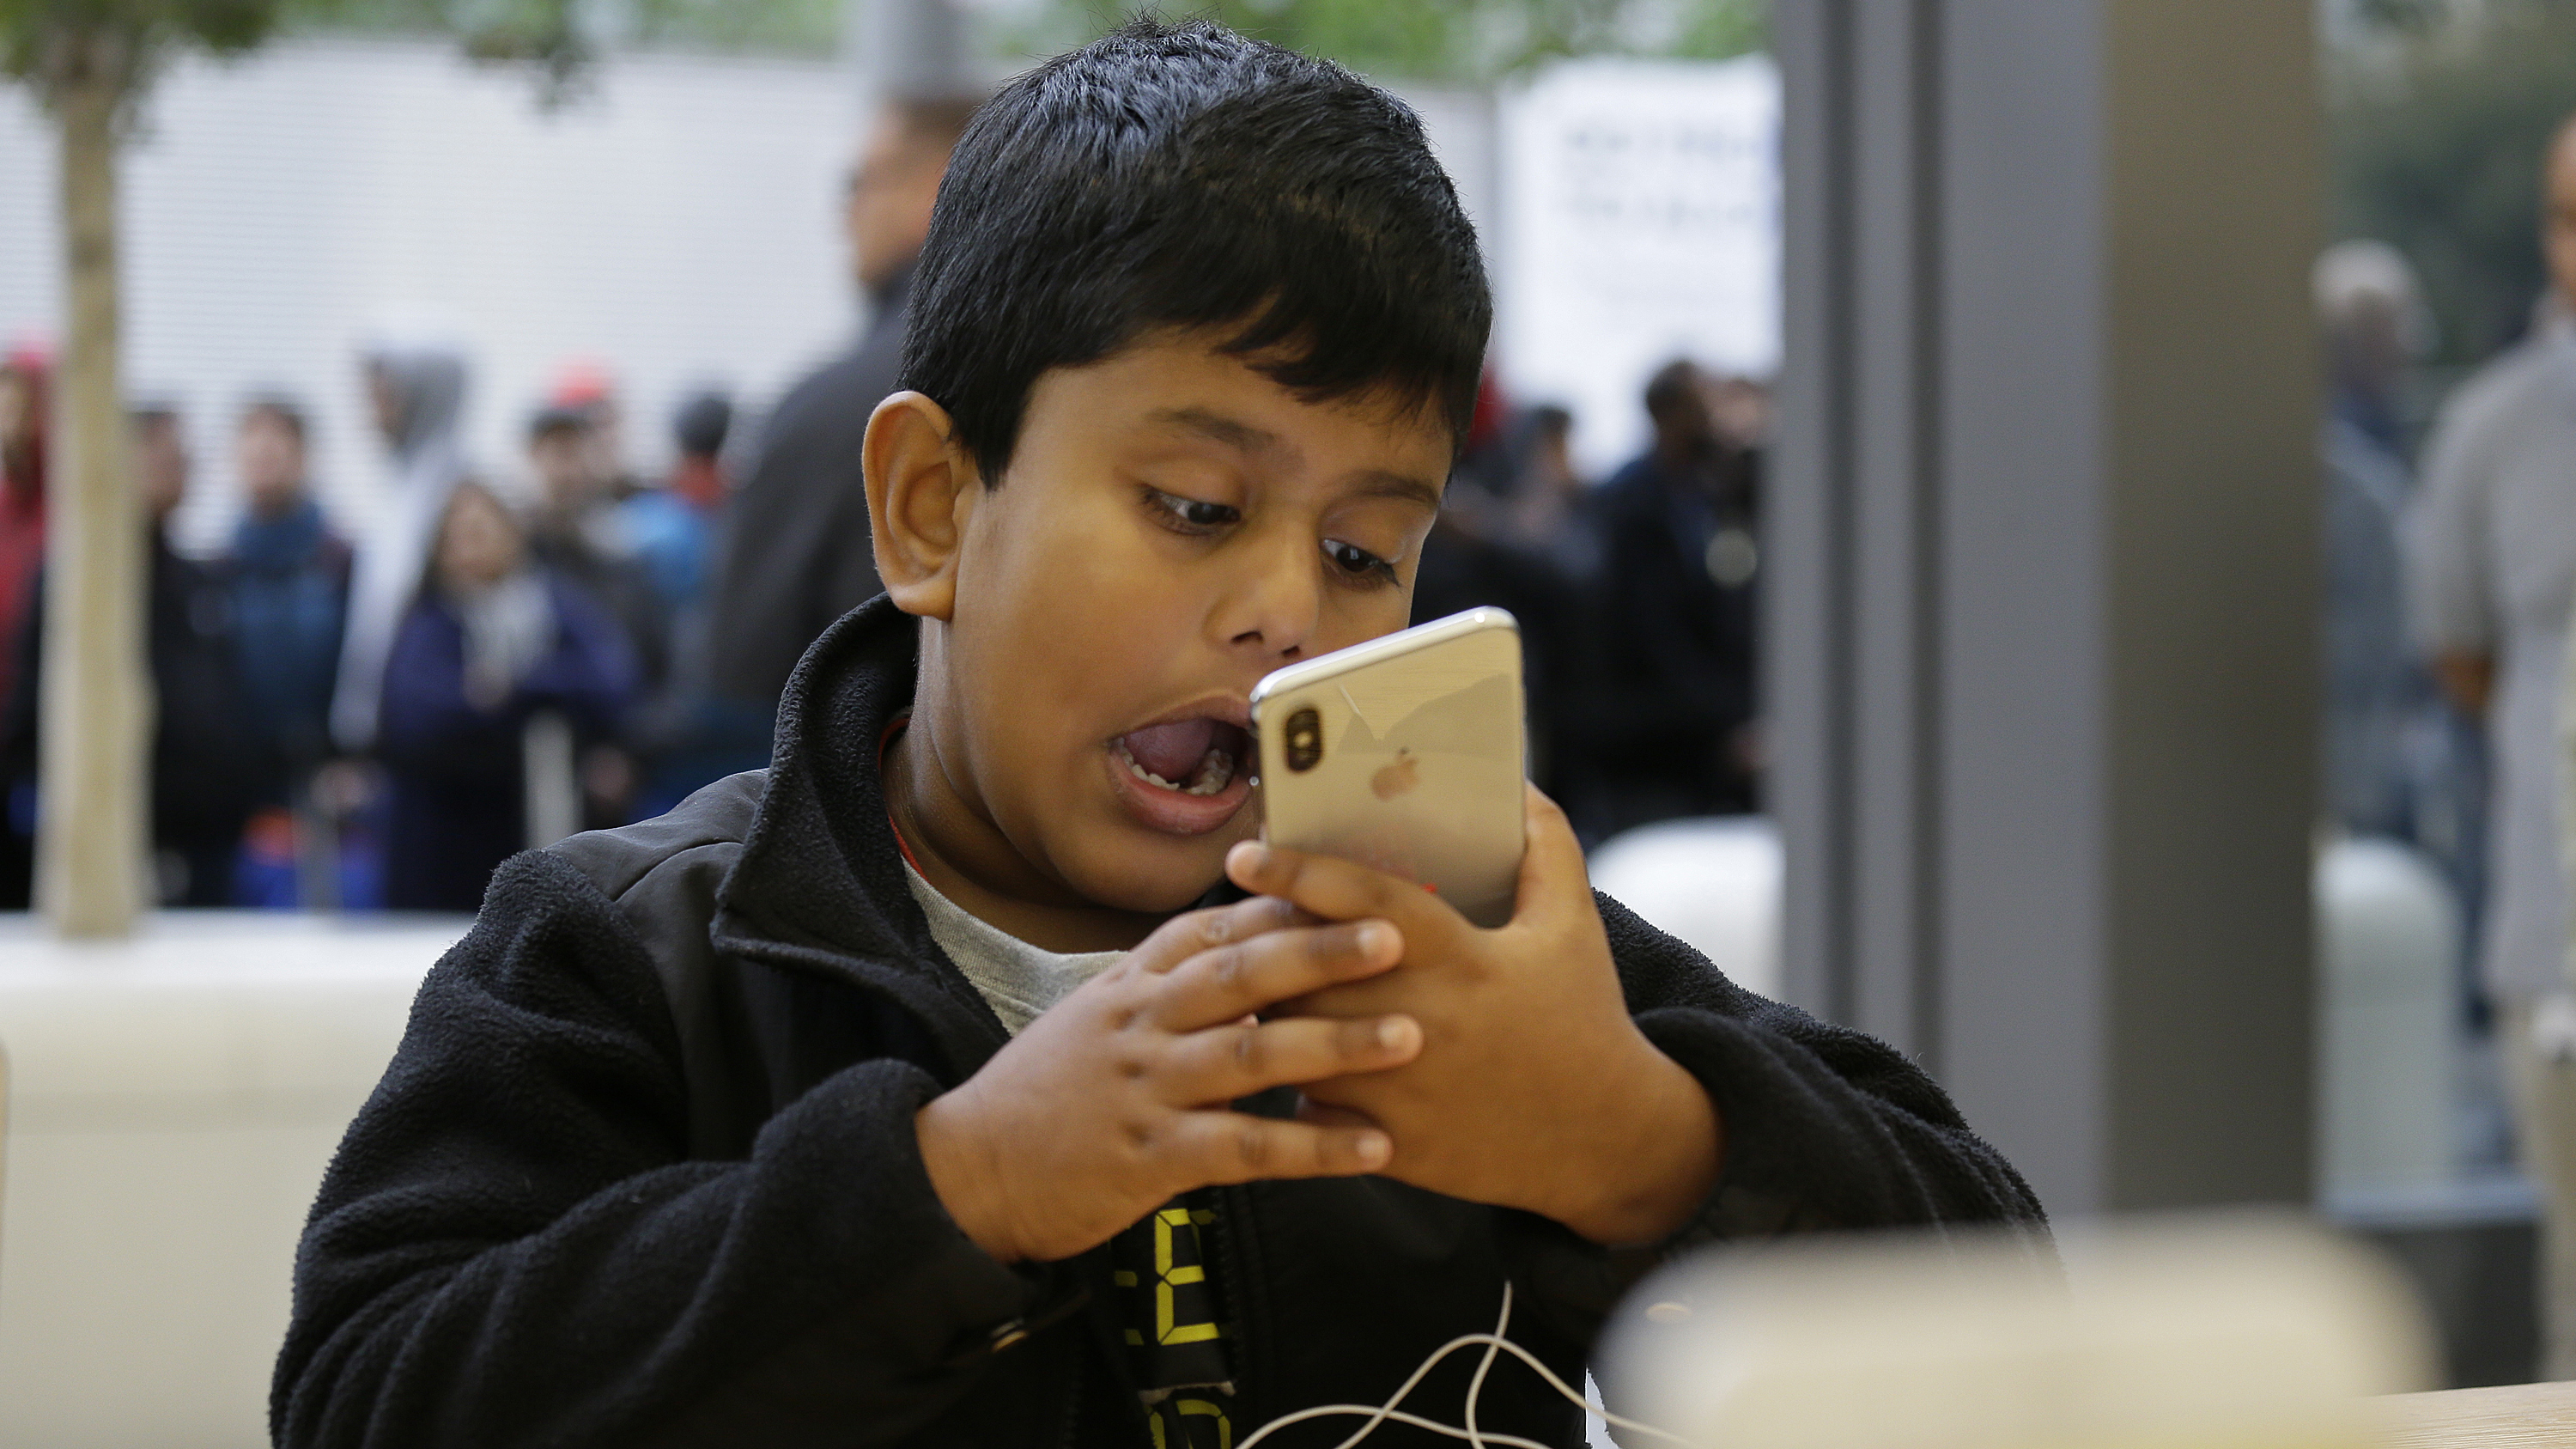 Aadhyan Vaka, 6, of Plainsboro, N.J., makes faces while using the animoji feature of the new iPhone X at the Apple Union Square store Friday, Nov. 3, 2017, in San Francisco. The iPhone X's lush screen, facial-recognition skills and $1,000 price tag are breaking new ground in Apple's marquee product line. Now, the much-anticipated device is testing the patience of consumers and investors as demand outstrips suppliers' capacity. (AP Photo/Eric Risberg)